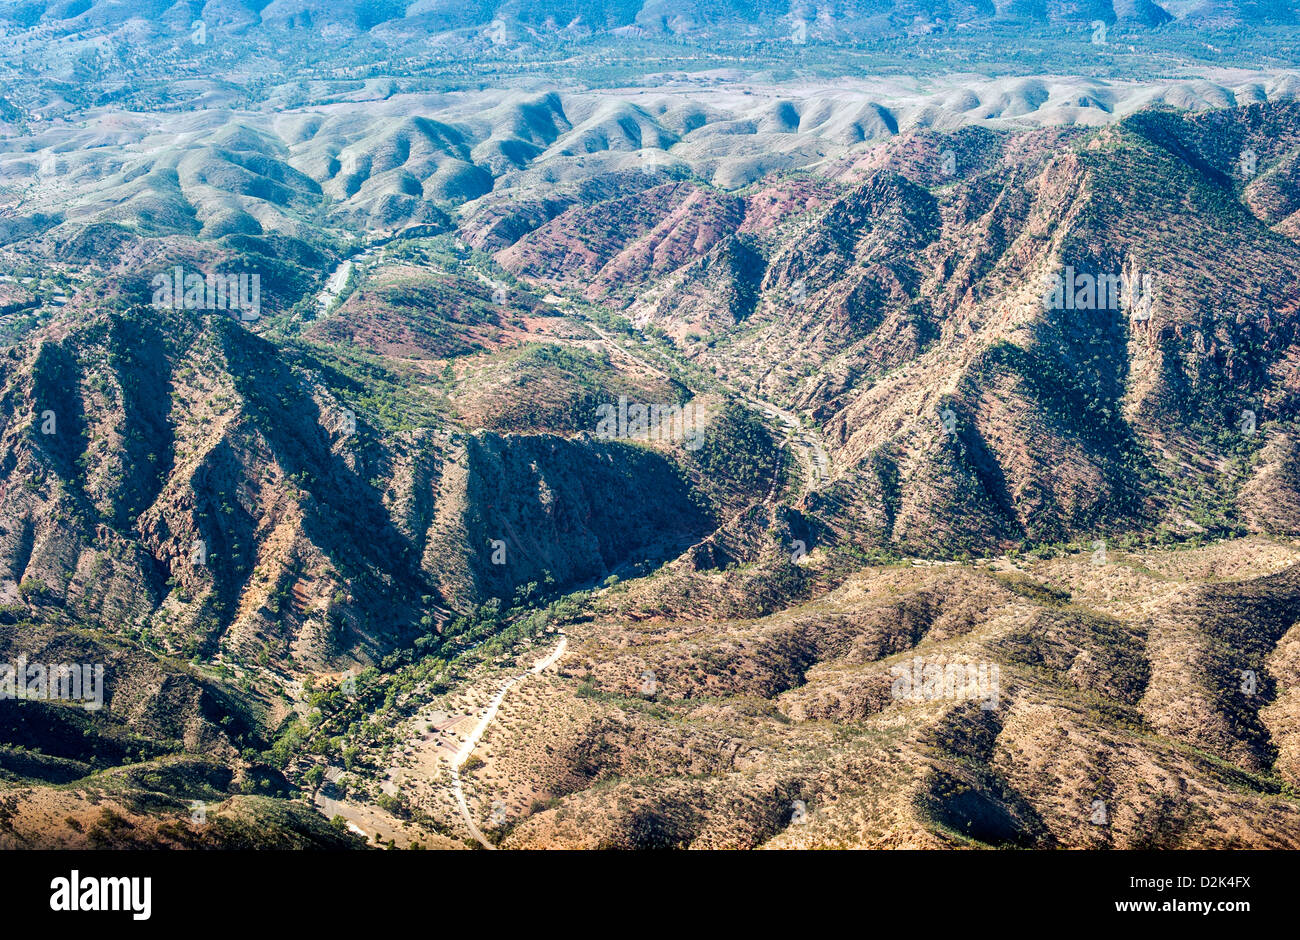 An aerial of almost bare rugged mountain terrain in South Australia's outback - Stock Image